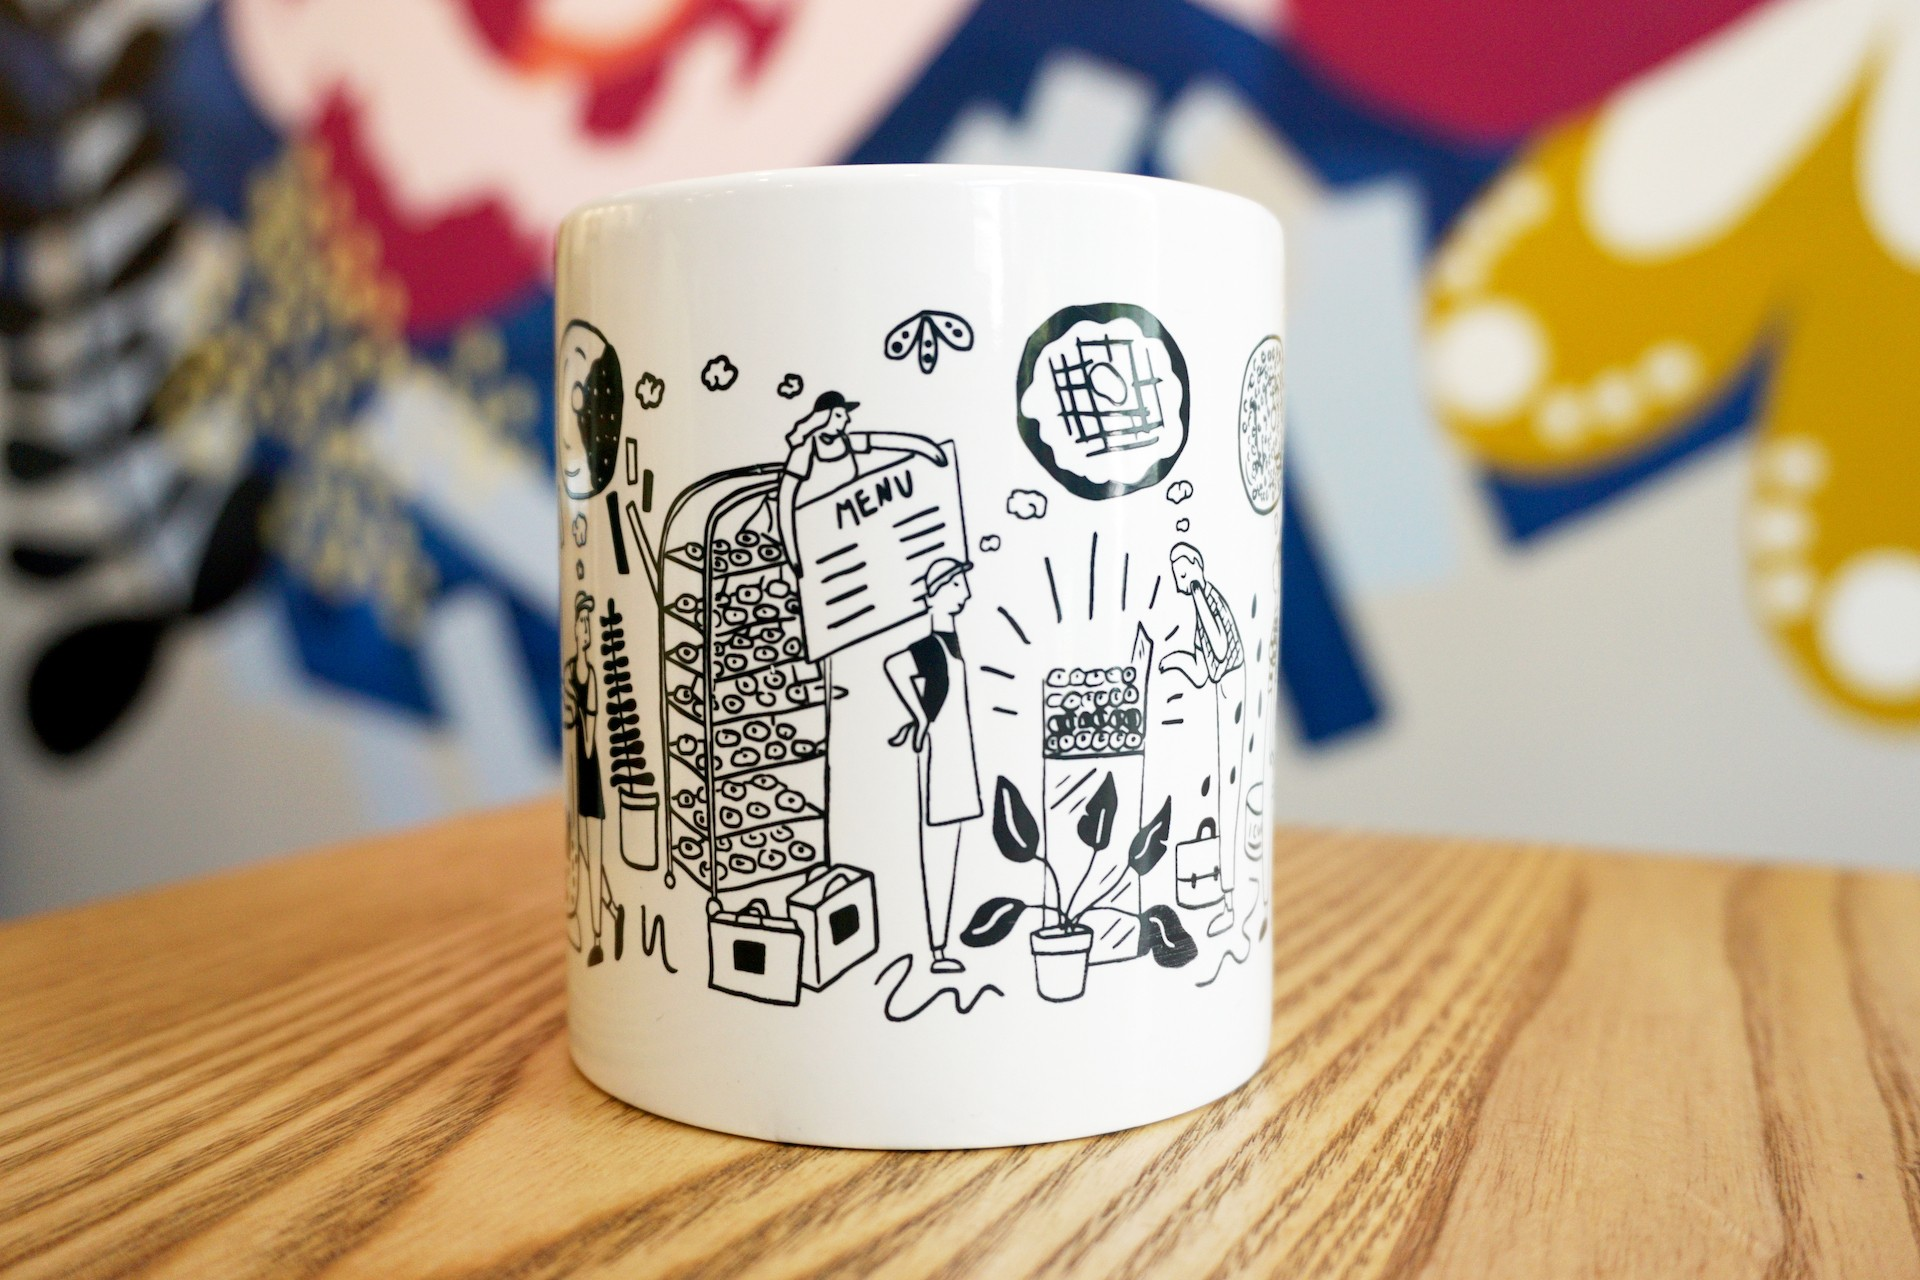 White ceramic mug on wooden table with colorful mural in background. Mug illustration includes oversized kitchen items, donuts and bakers.